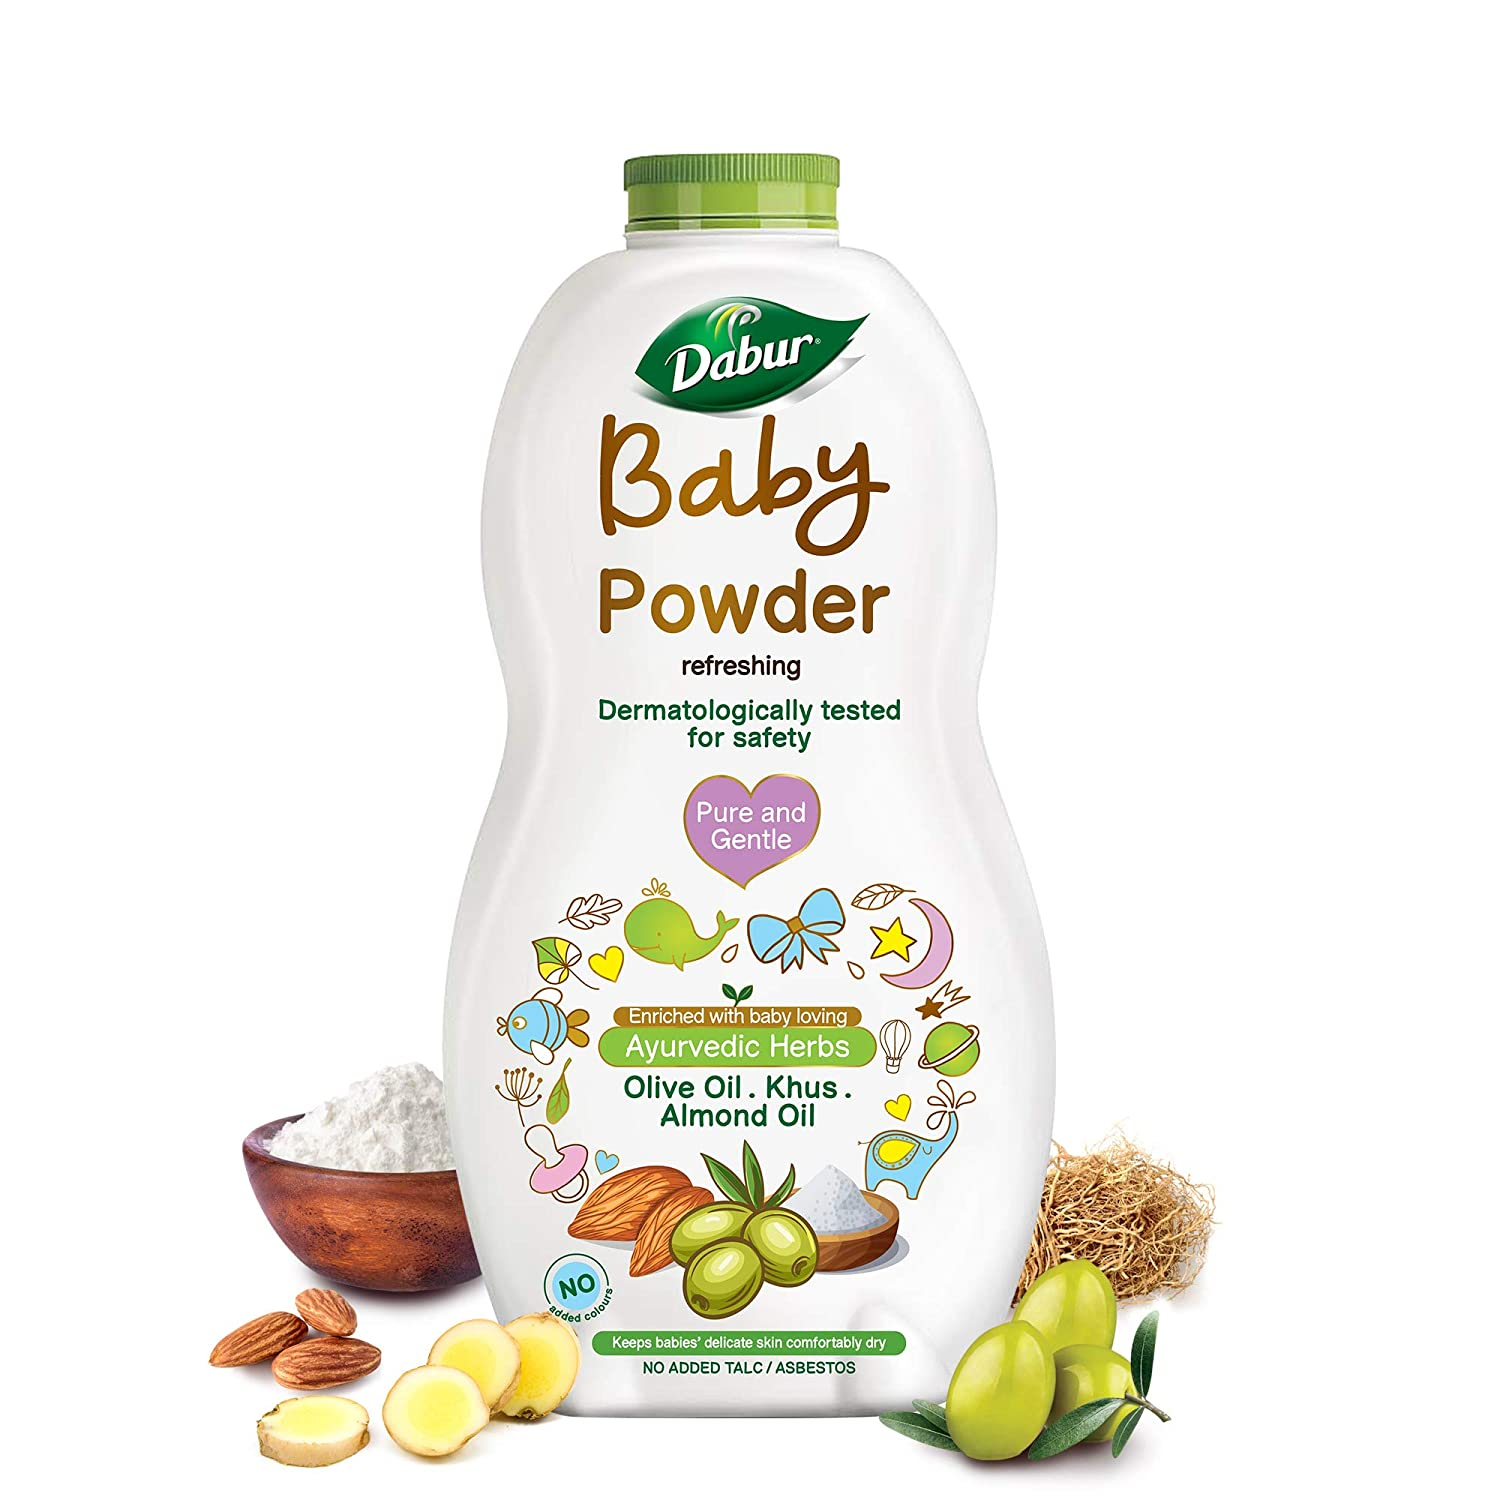 Dabur Baby Powder: No added Talc and Asbestos | Contains Oat Starch , Arrowroot Powder & Amba Haldi |Hypoallergenic & Dermatologically Tested with No Paraben & Phthalates - 150 g